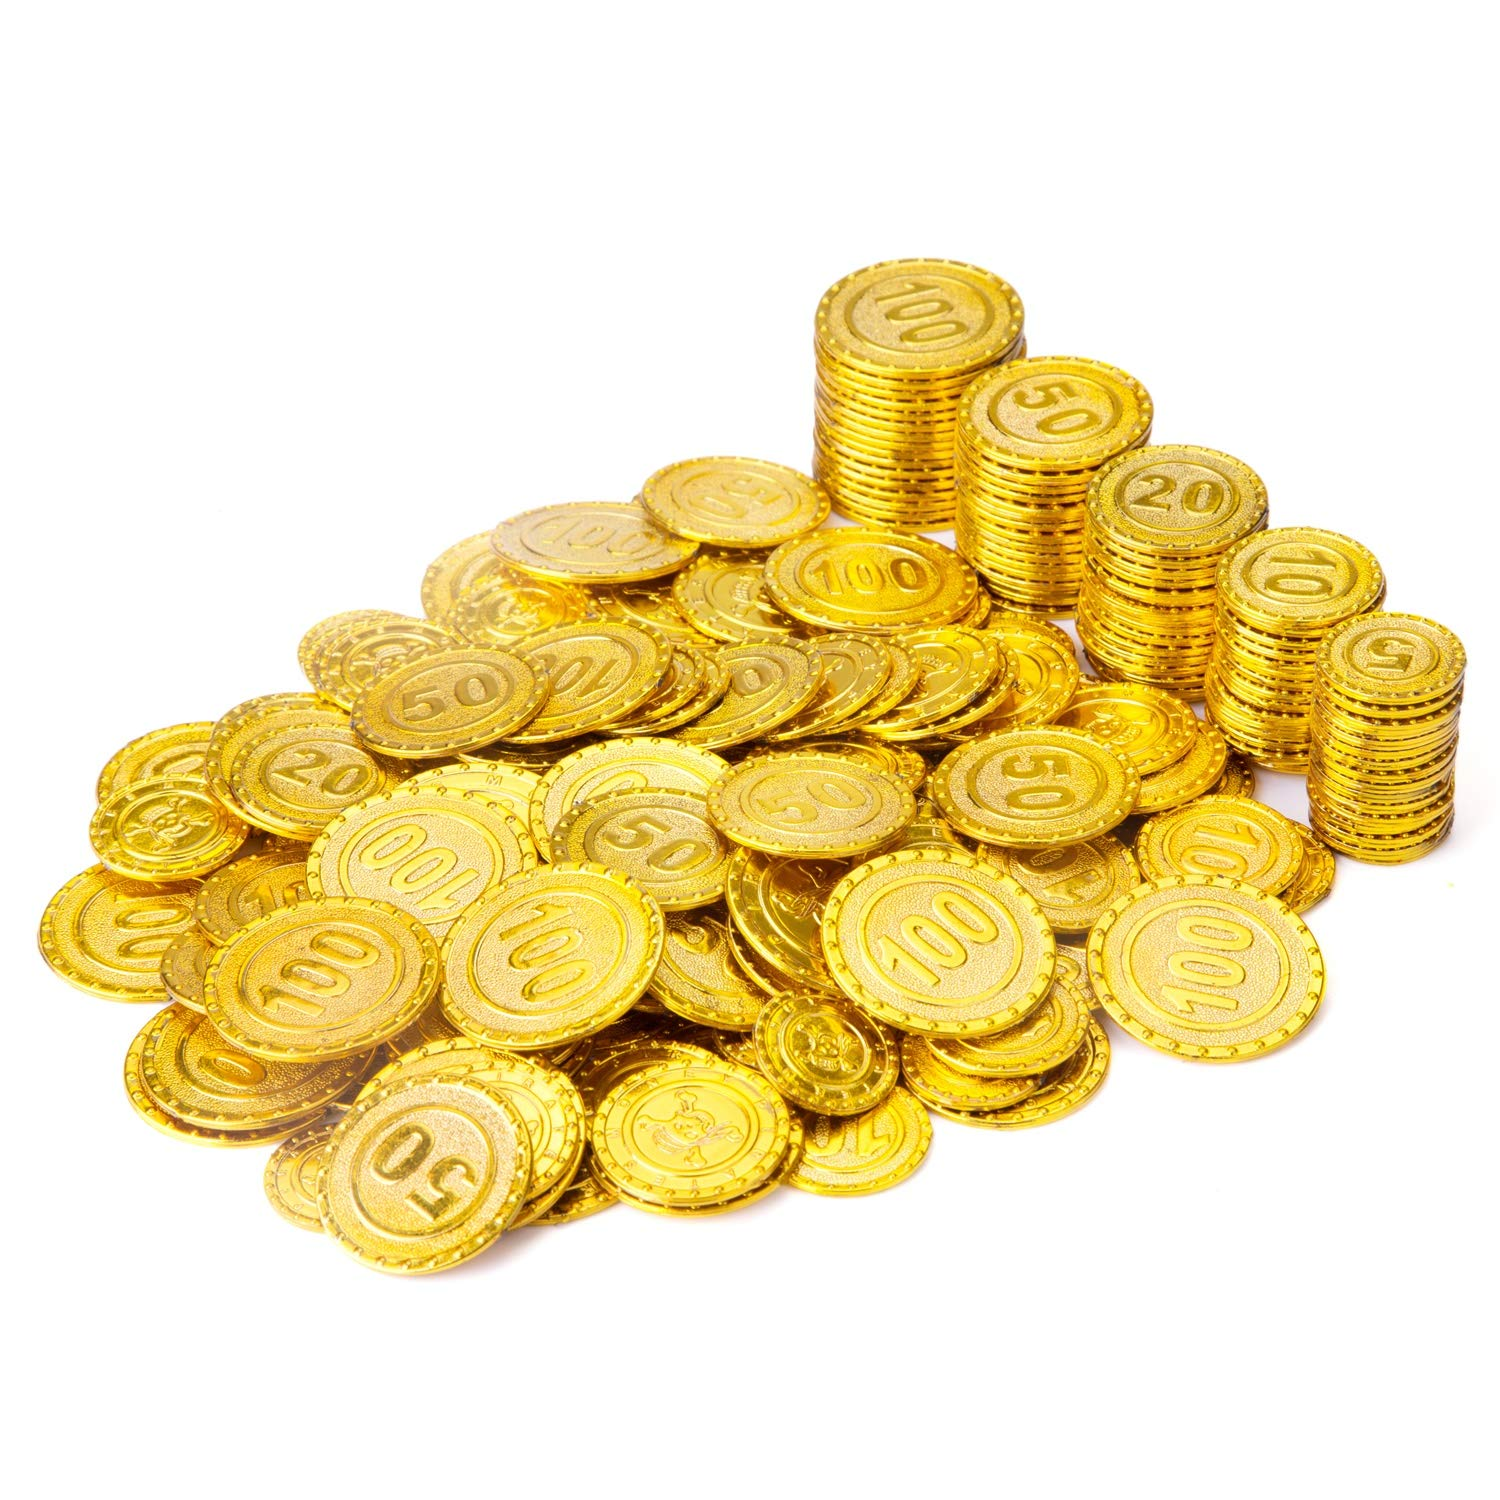 Wowok 200 PCS Plastic Gold Coins for Pretend and Play, Pirates Treasure Coins Play Money for Kids Counting, Math, Bag Stuffers, Prize, Hallowmas/ Christmas Party Favors Decoration Golden Coins by Wowok